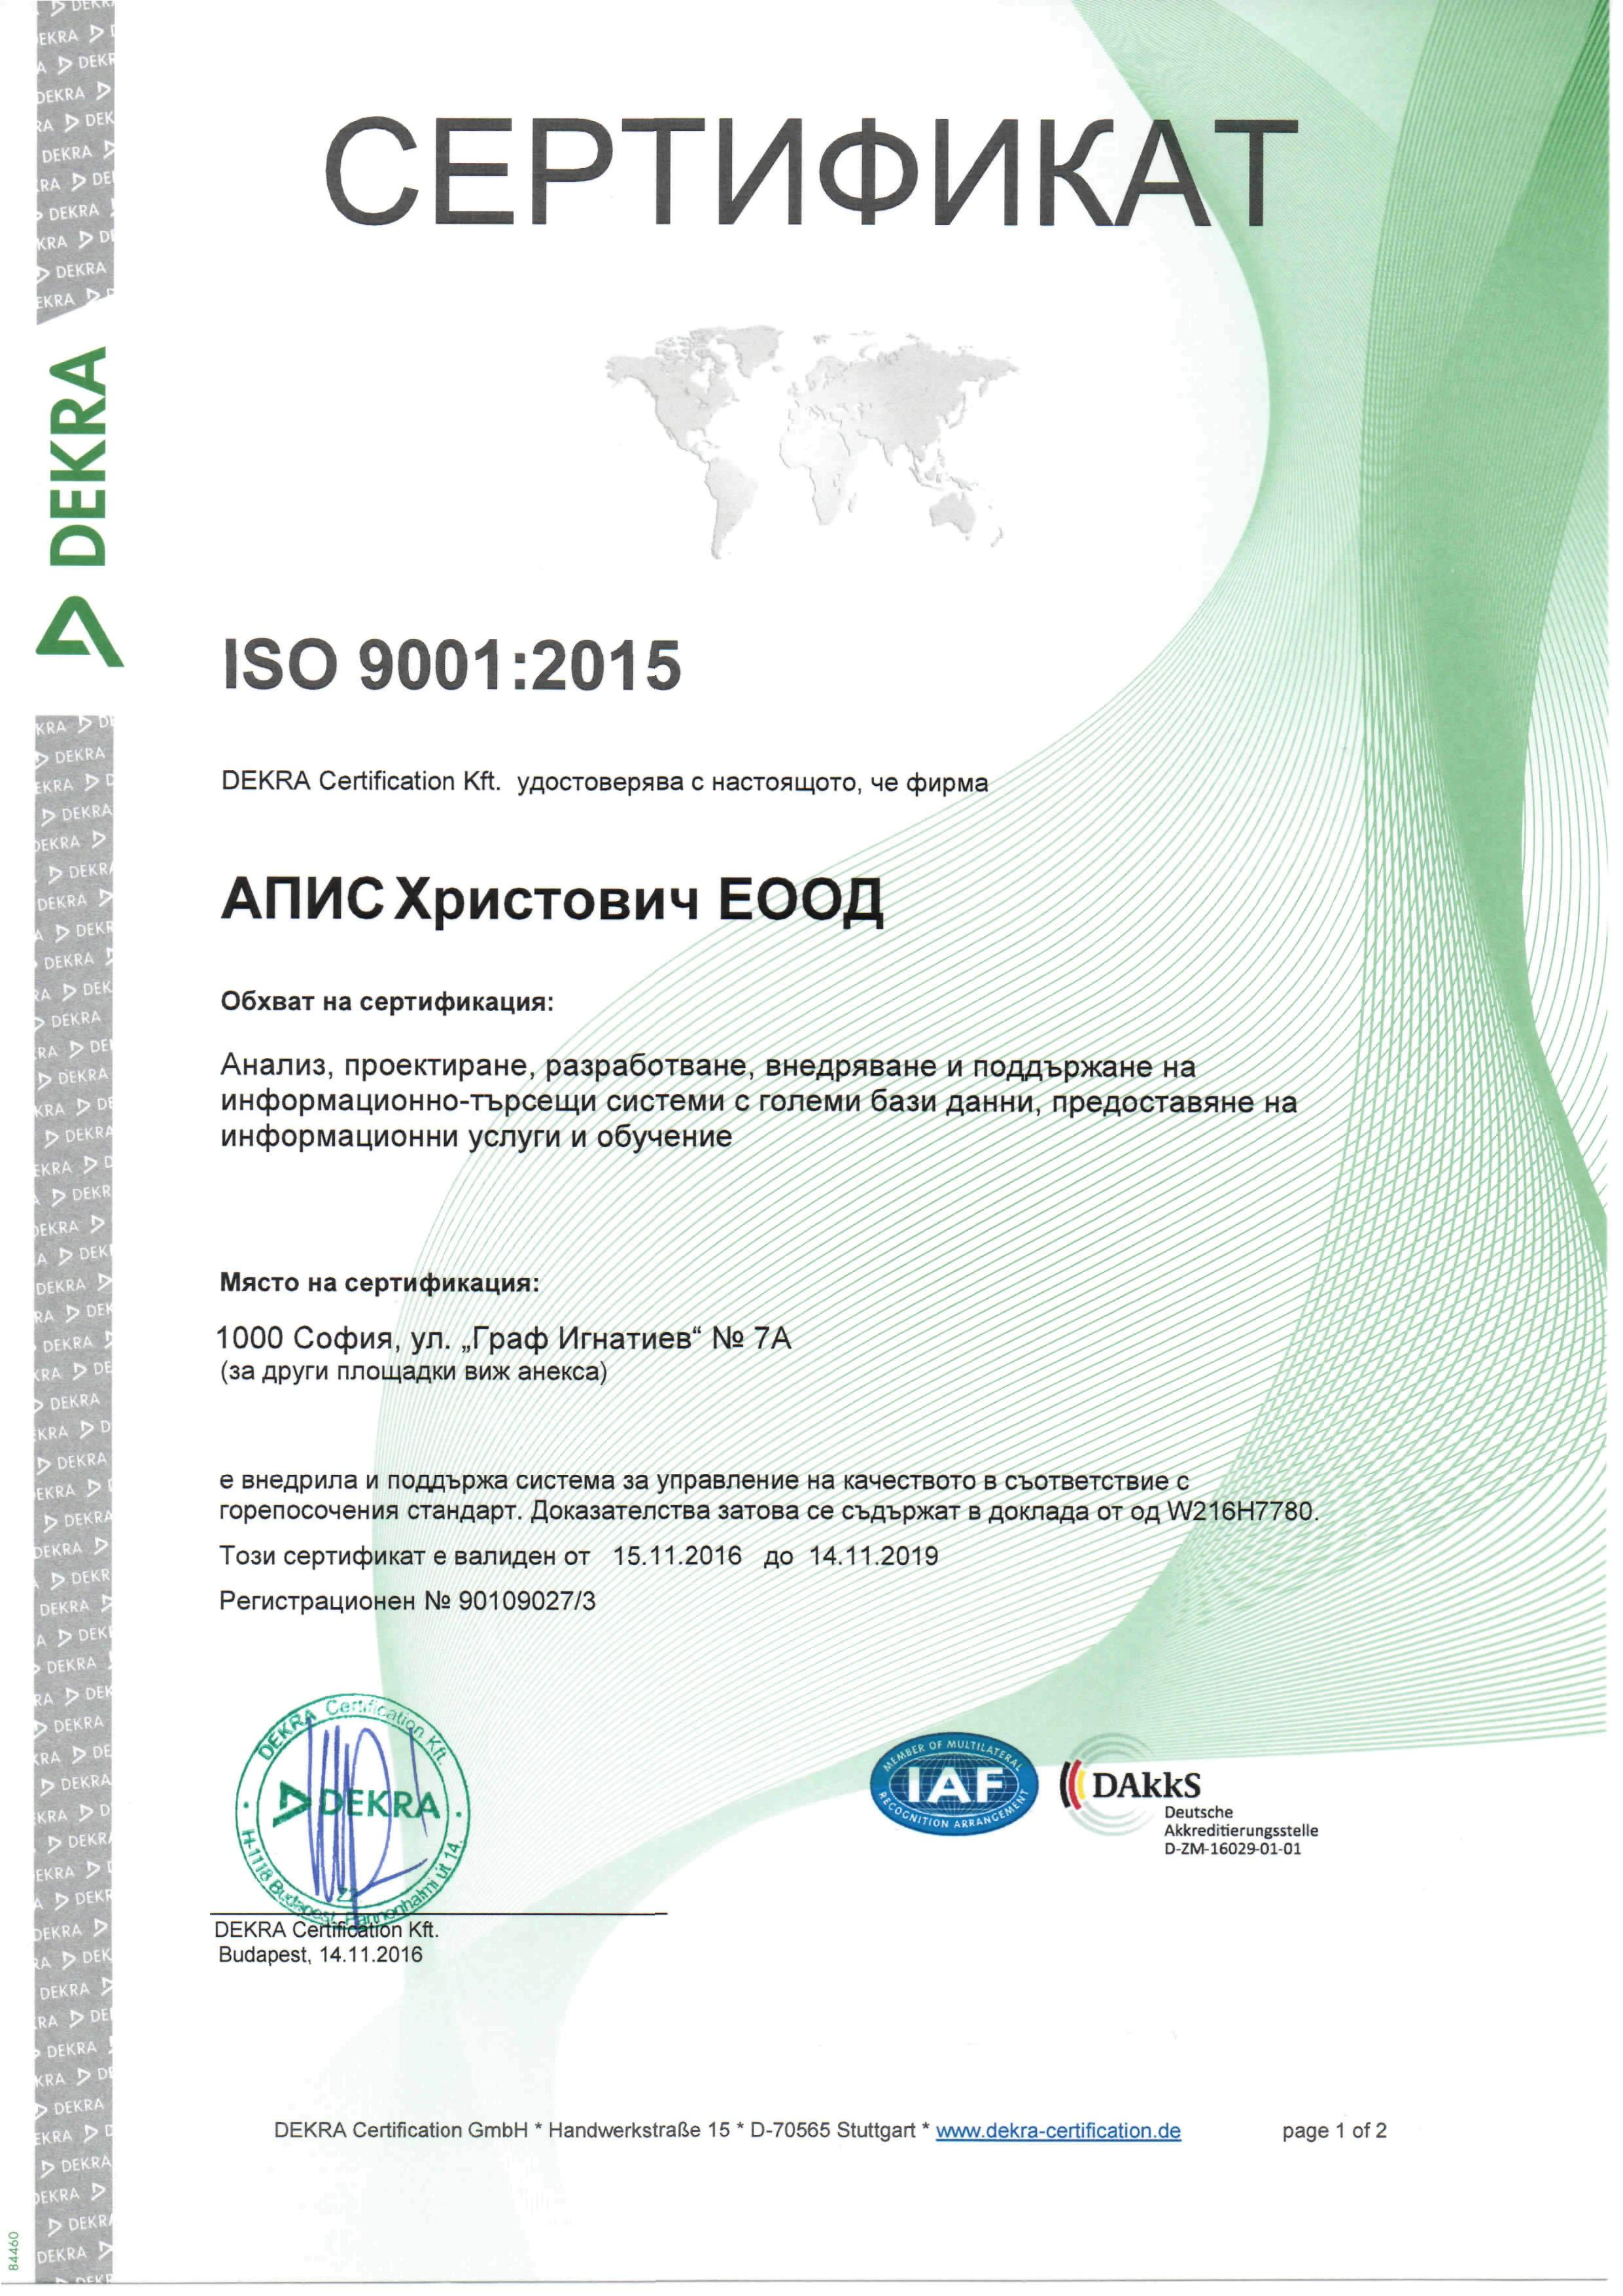 Apis Hristovich ISO